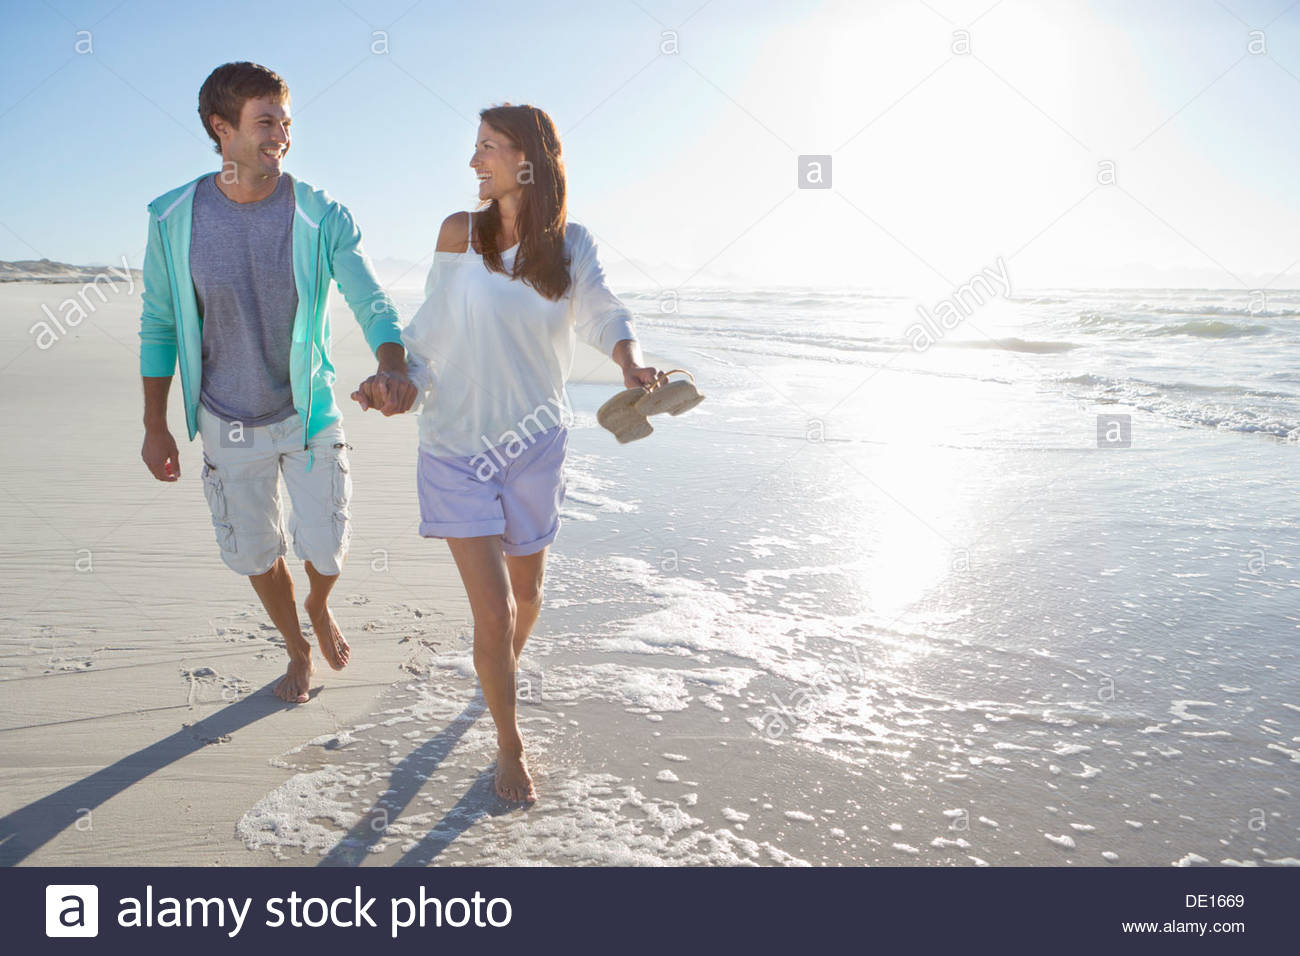 Happy couple holding hands and walking barefoot on sunny beach - Stock Image